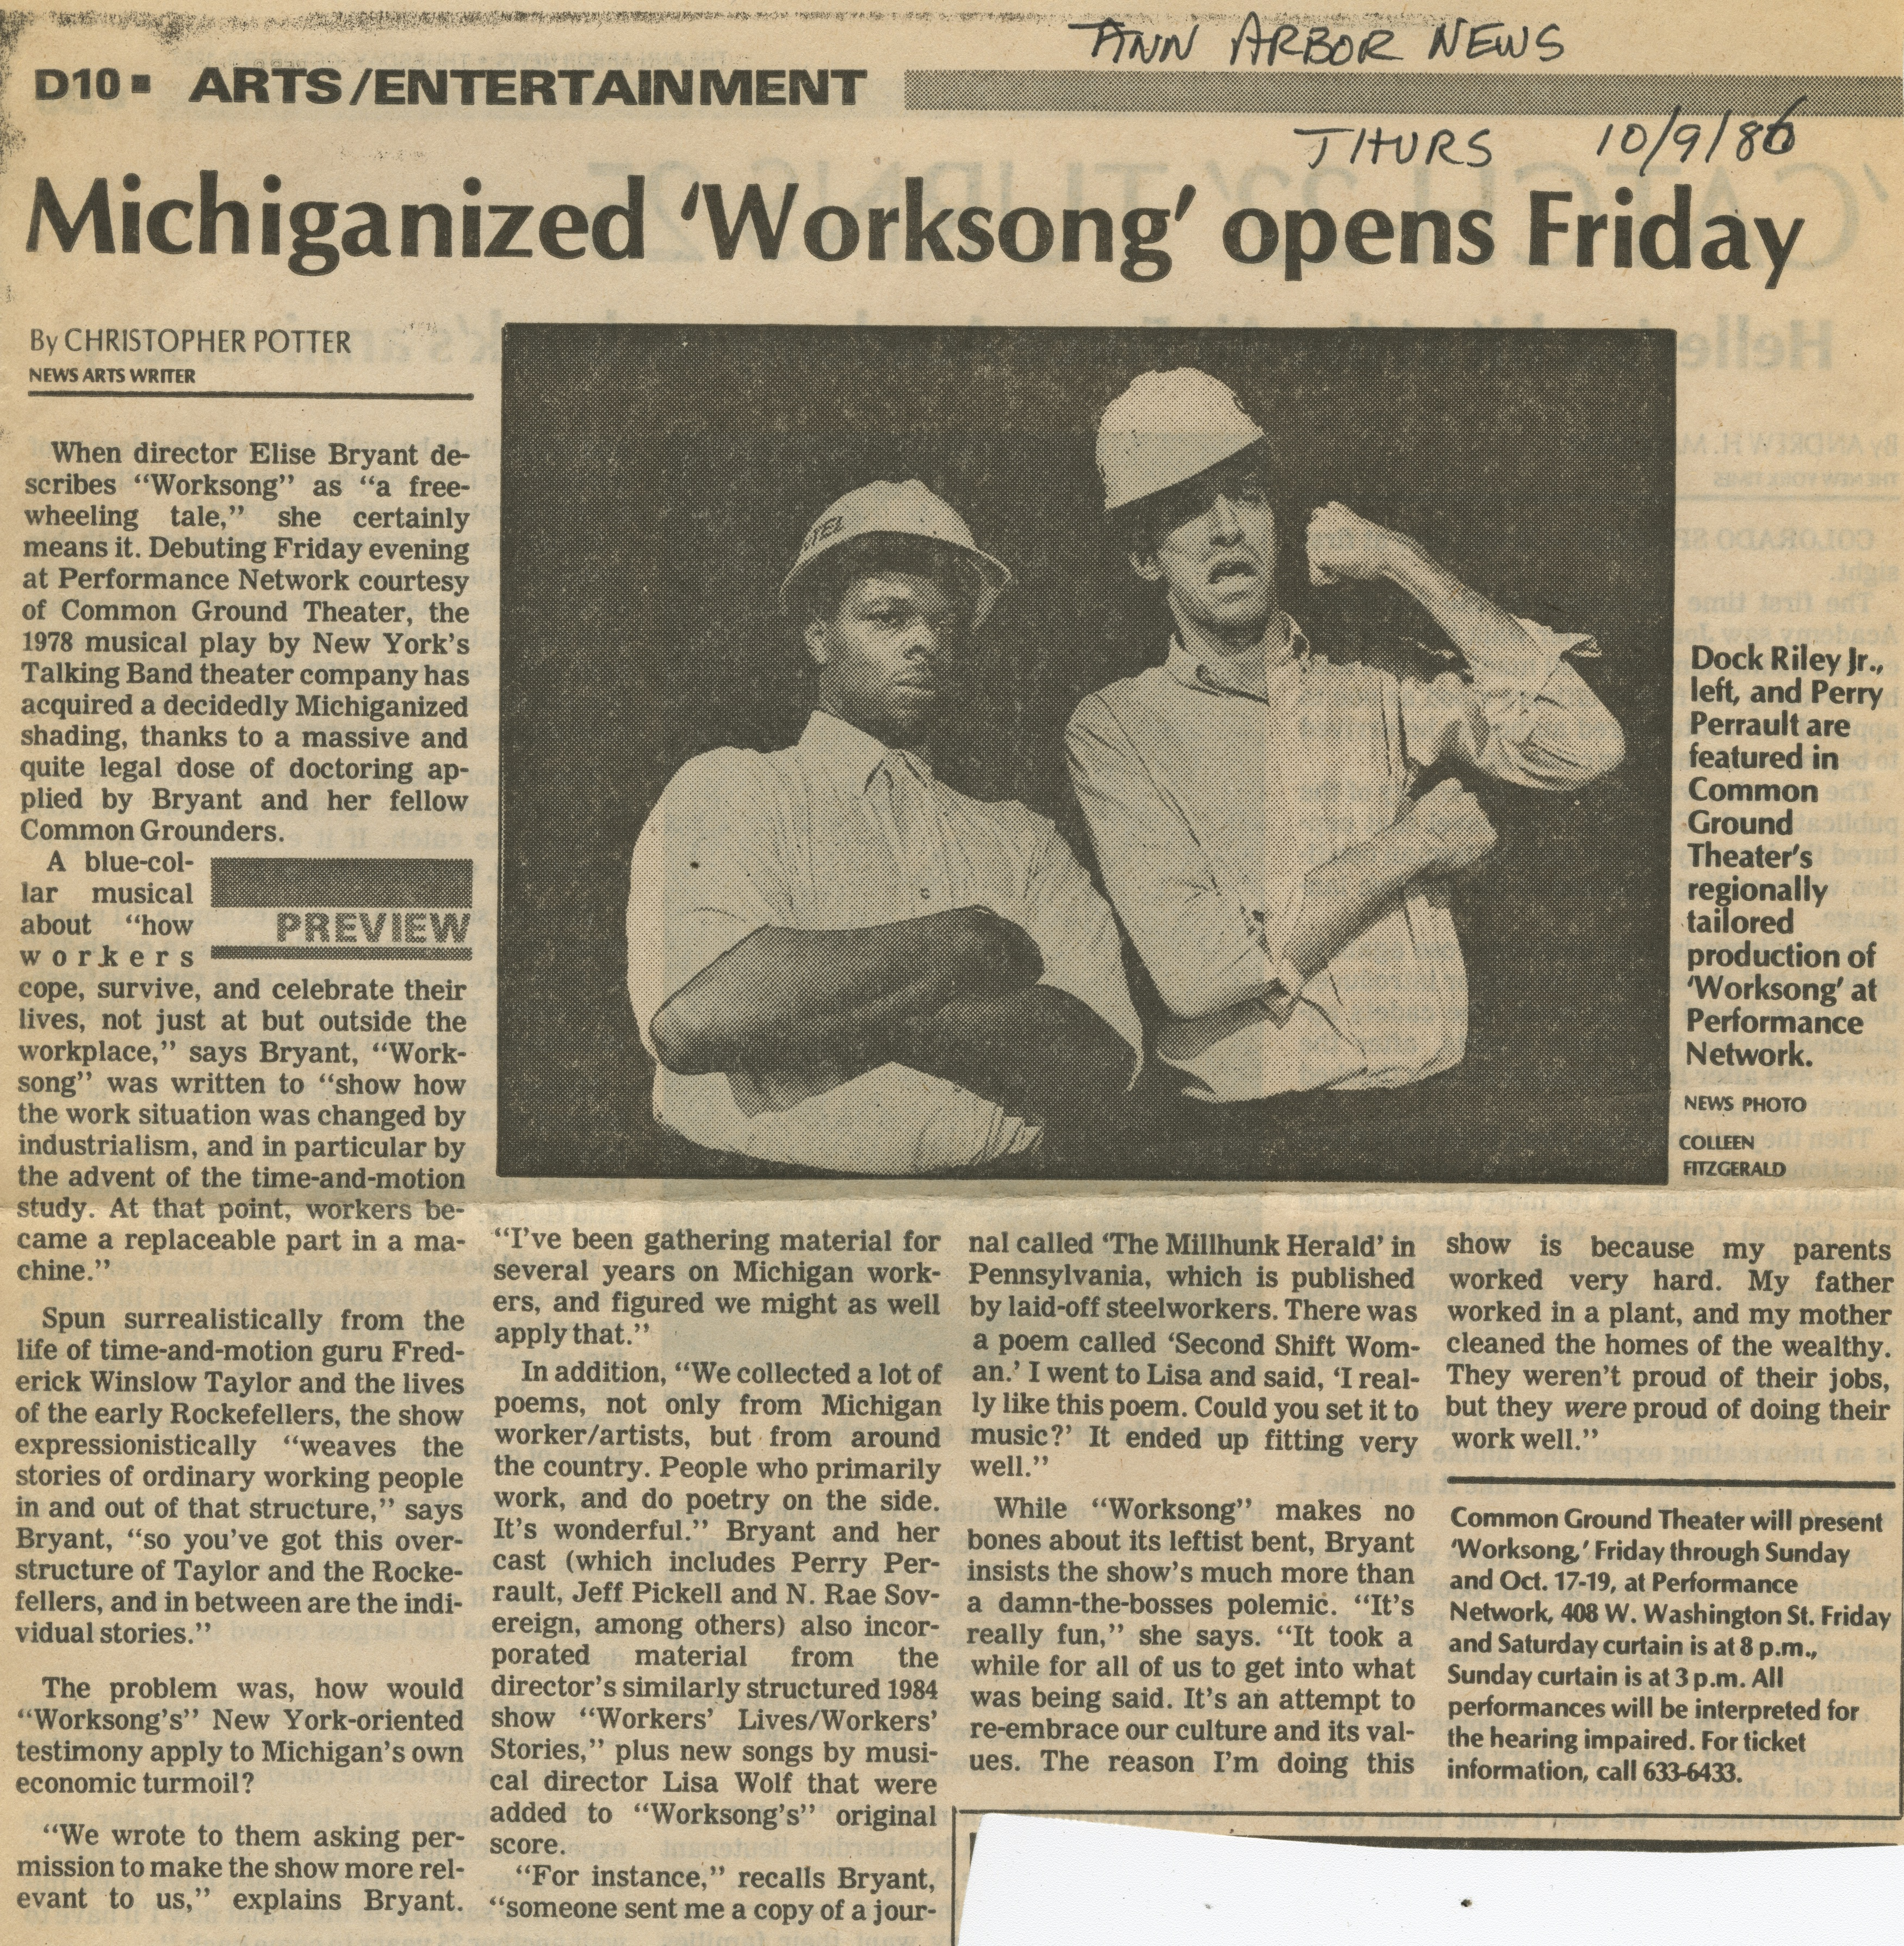 Michiganized 'Worksong' opens Friday image